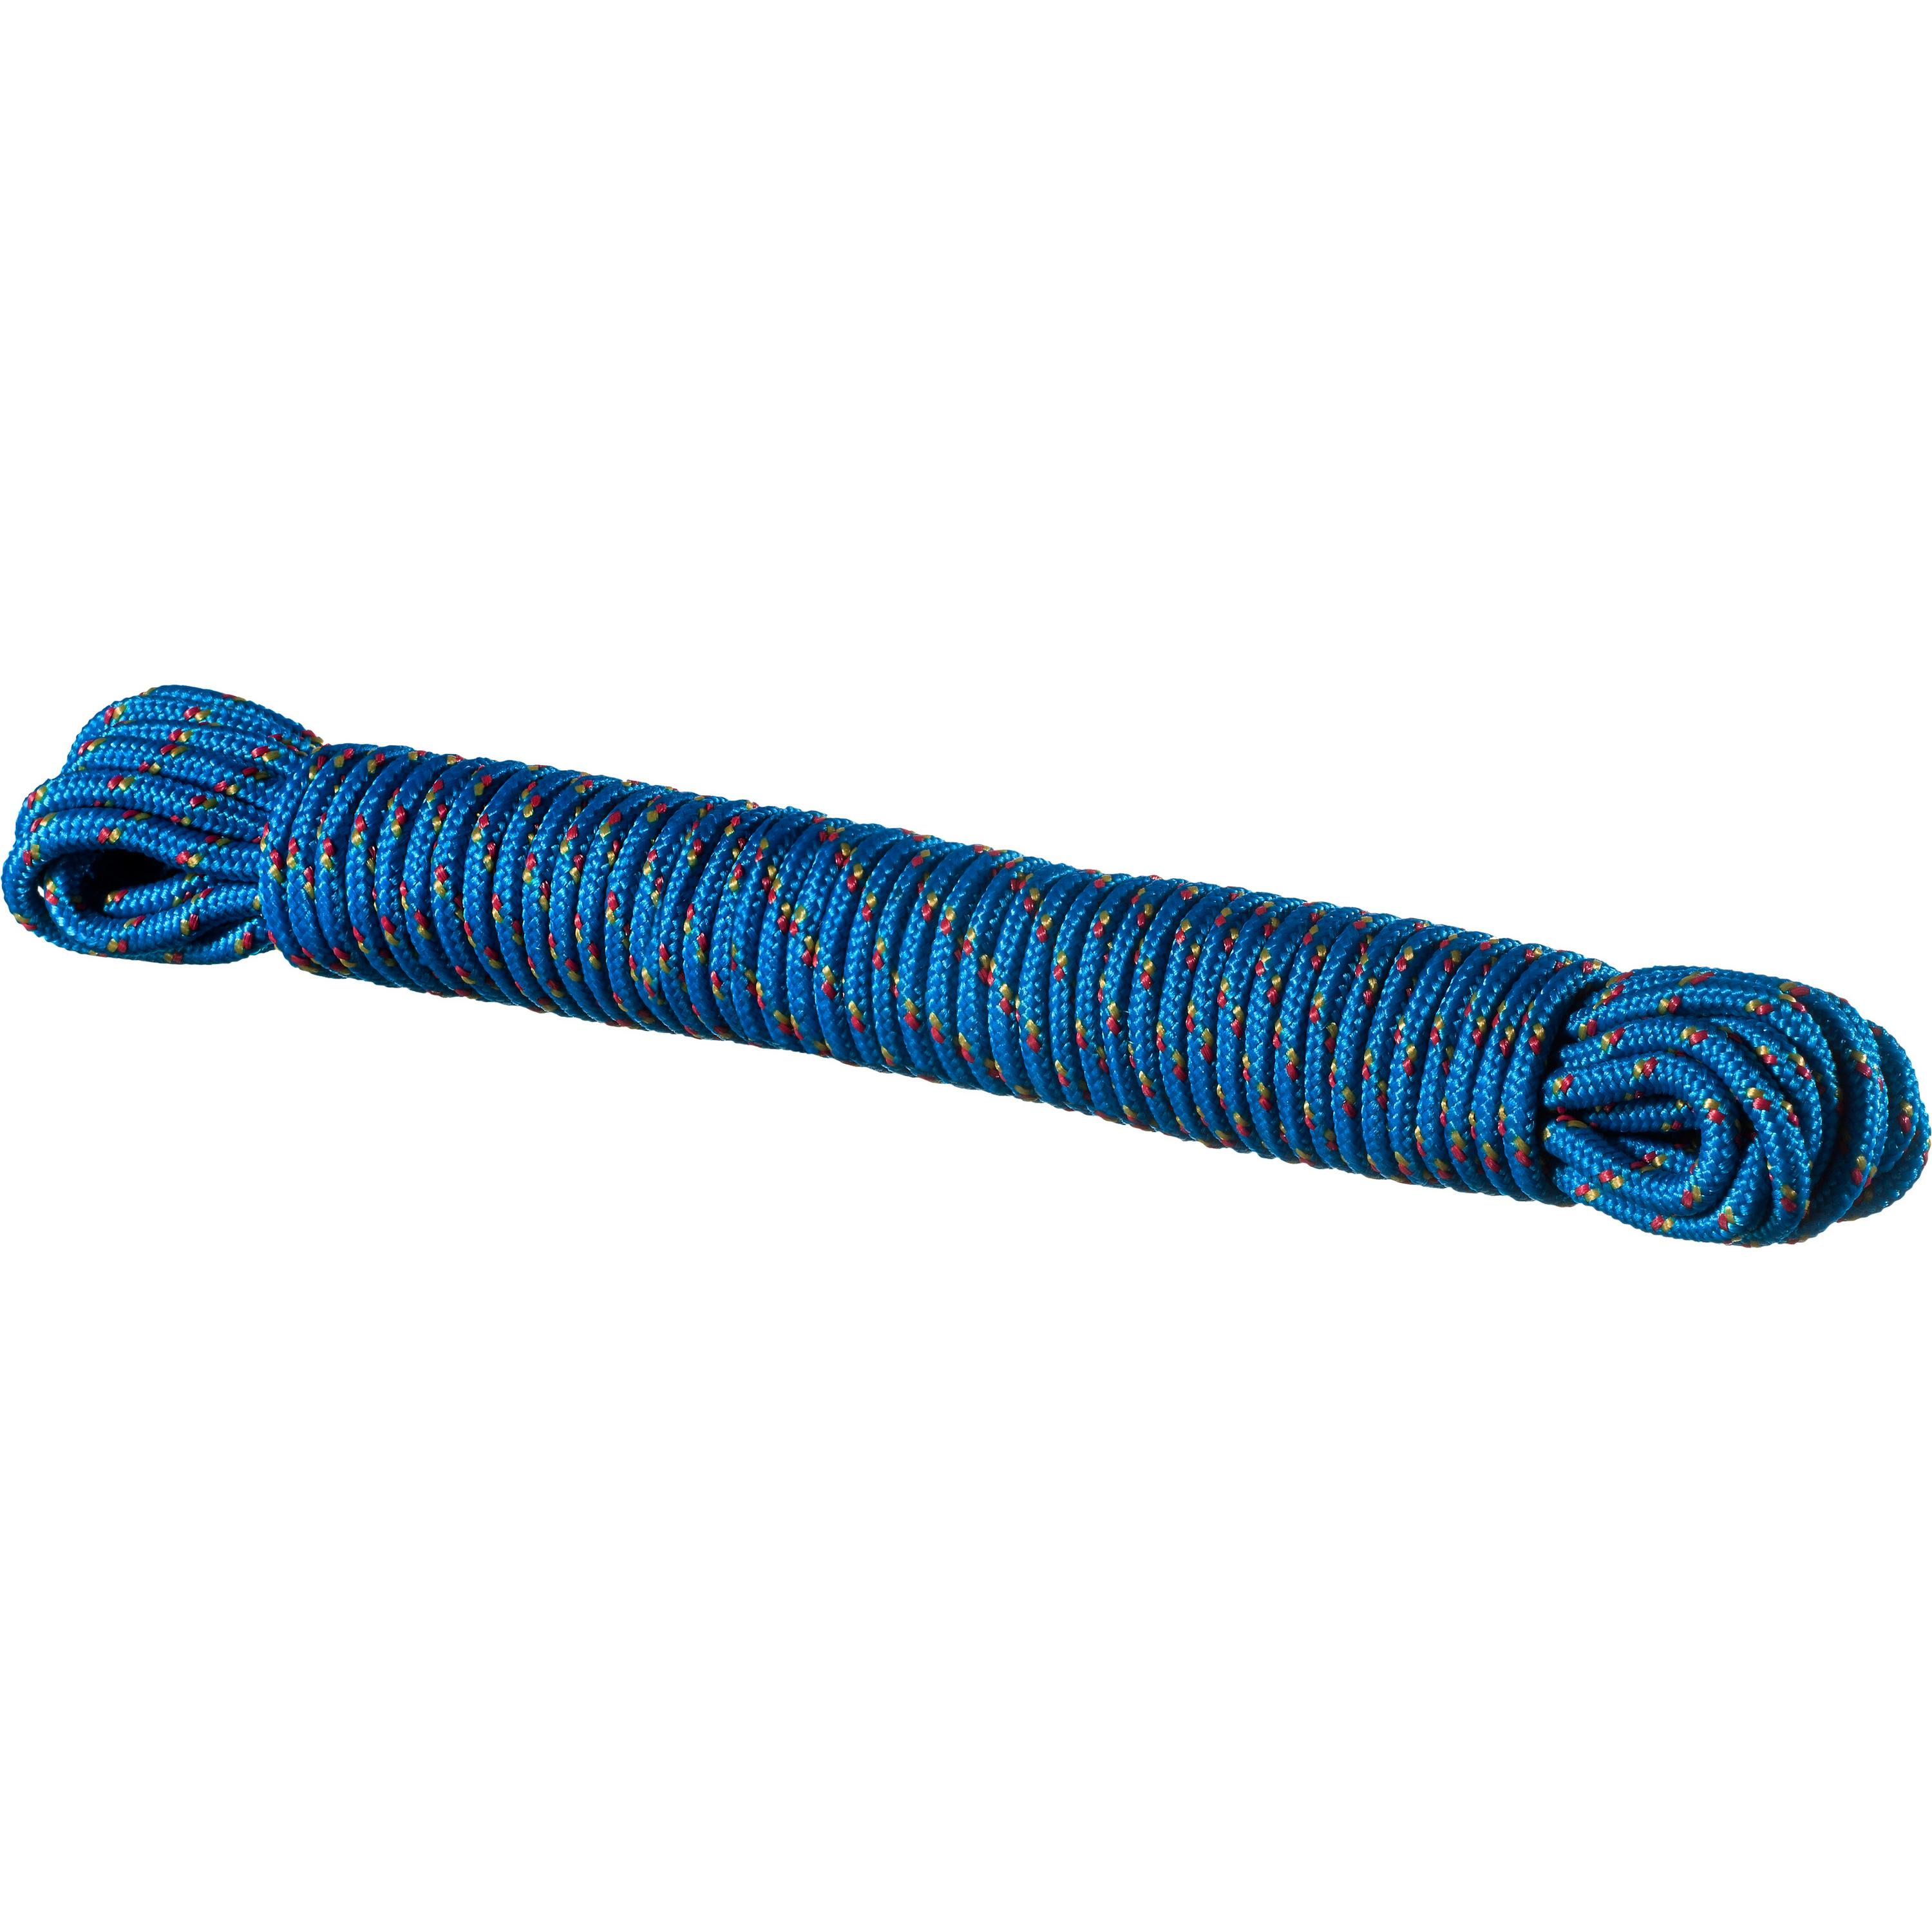 Image of AceCamp Utility Cord 3mm Seil